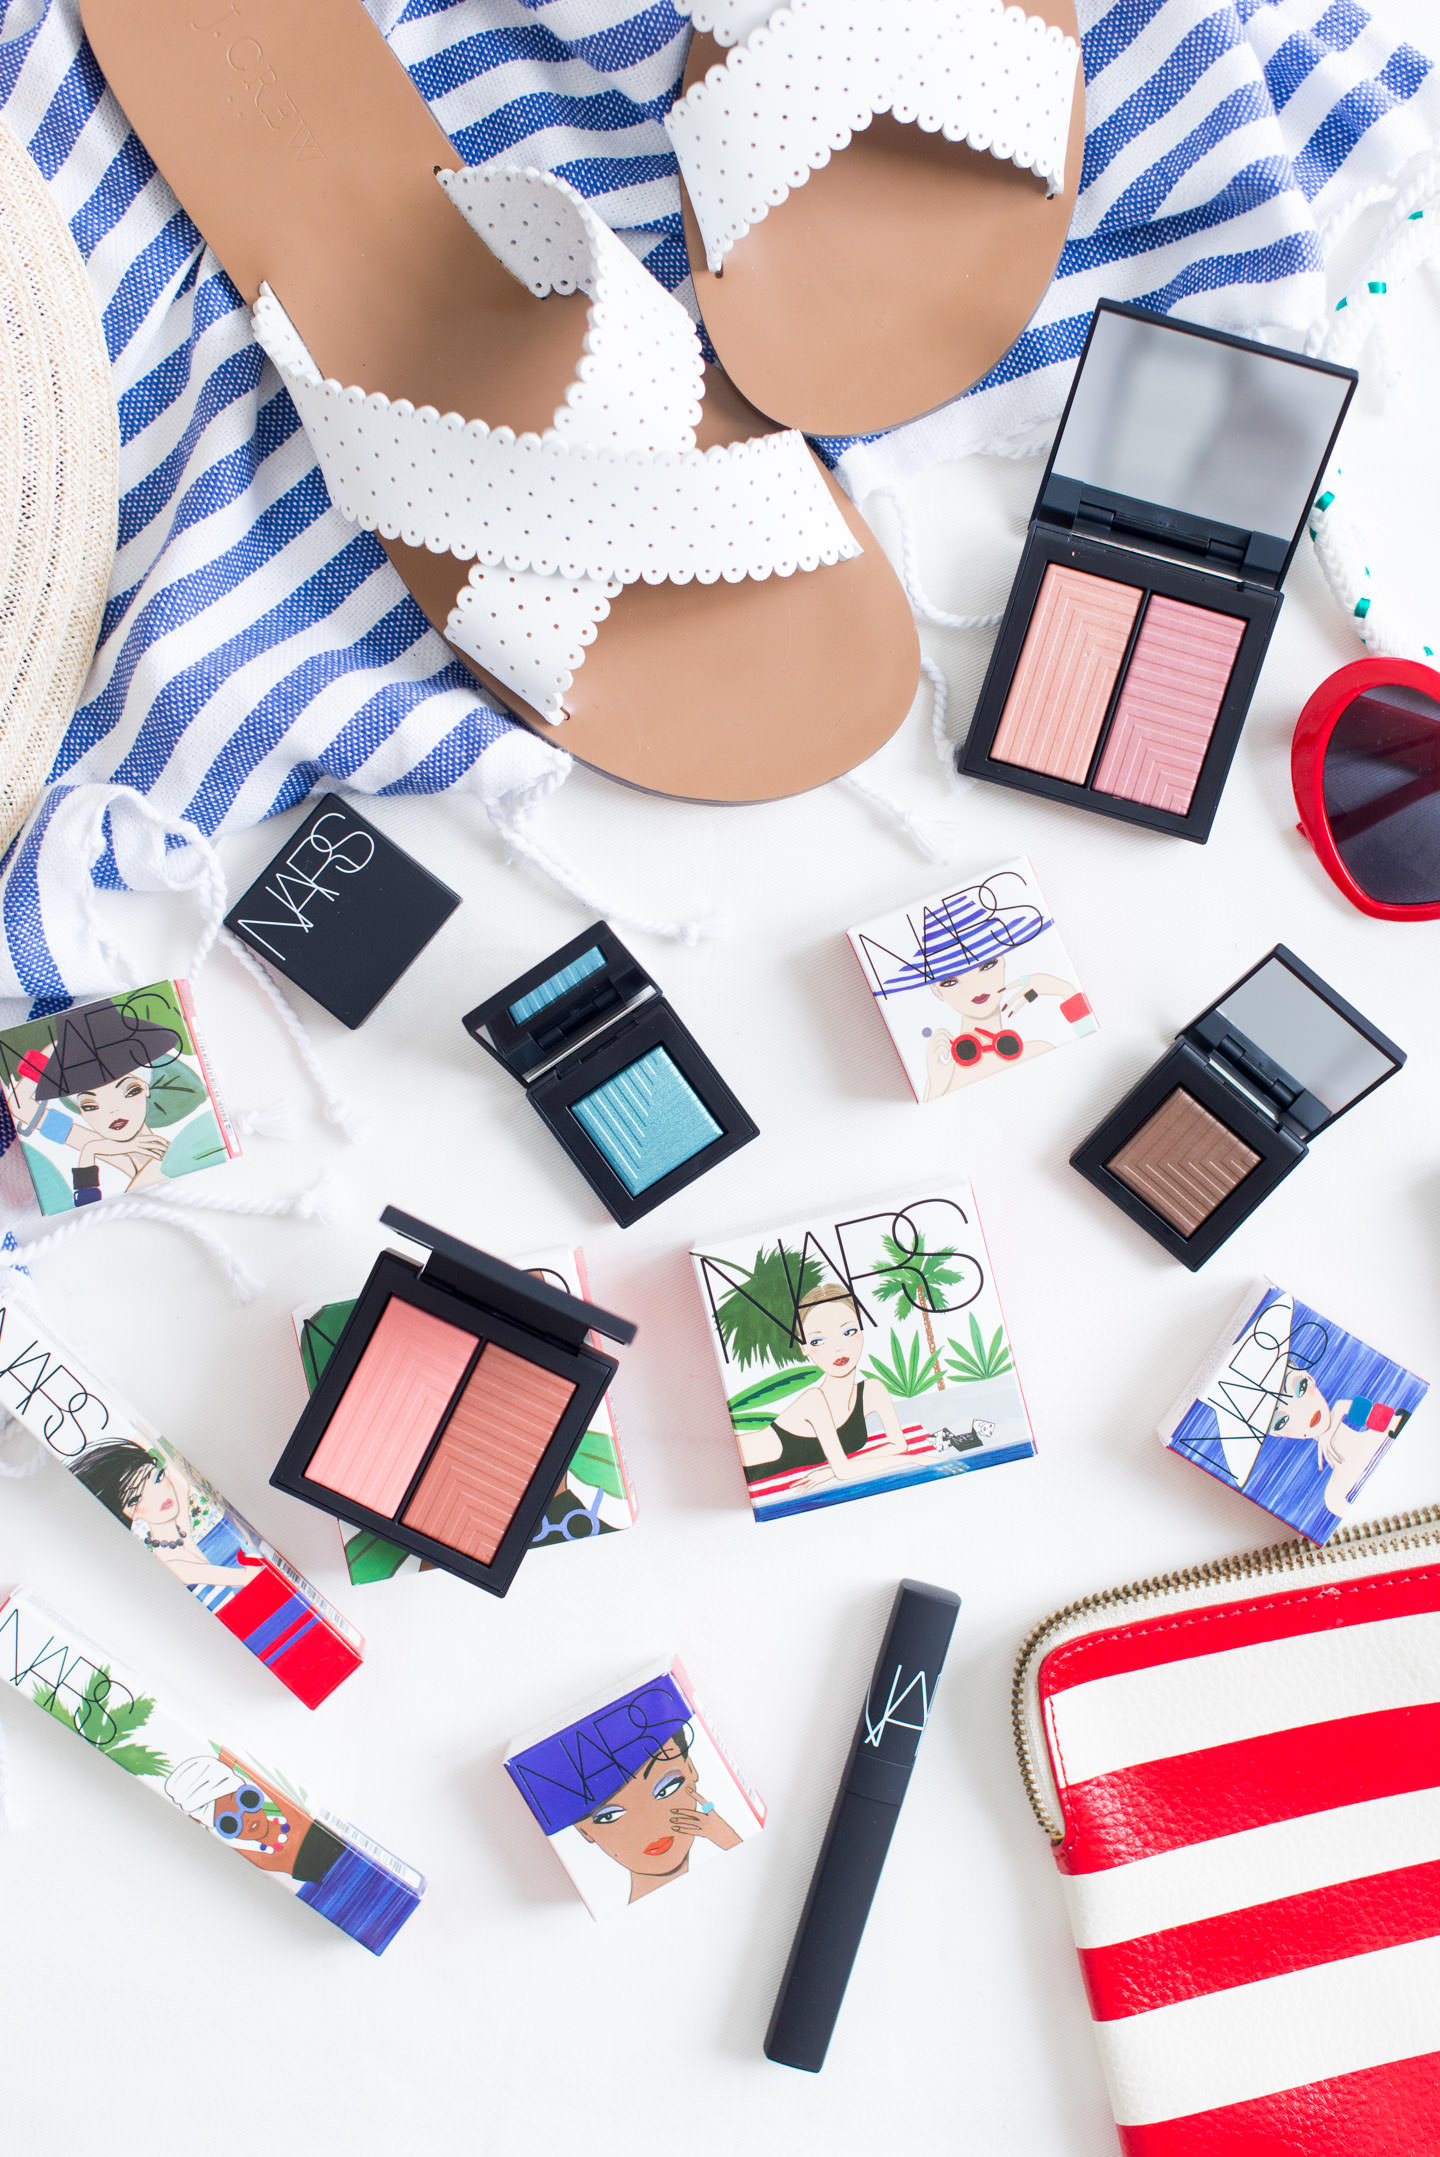 Blog-mode-and-the-city-beaute-nars-undercover-nouveautes-edition-limitee-2